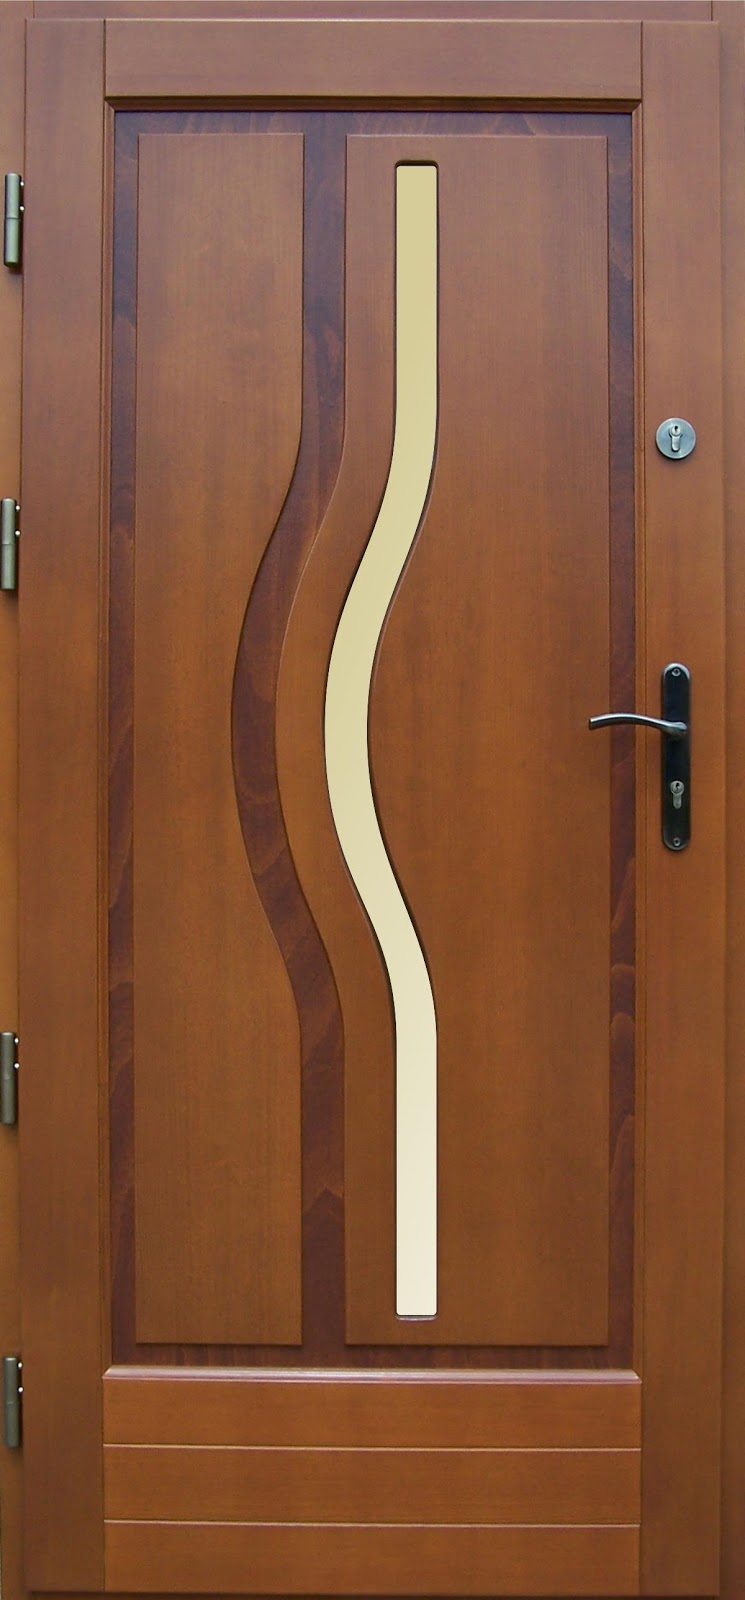 Foundation dezin decor doors design for Different door designs